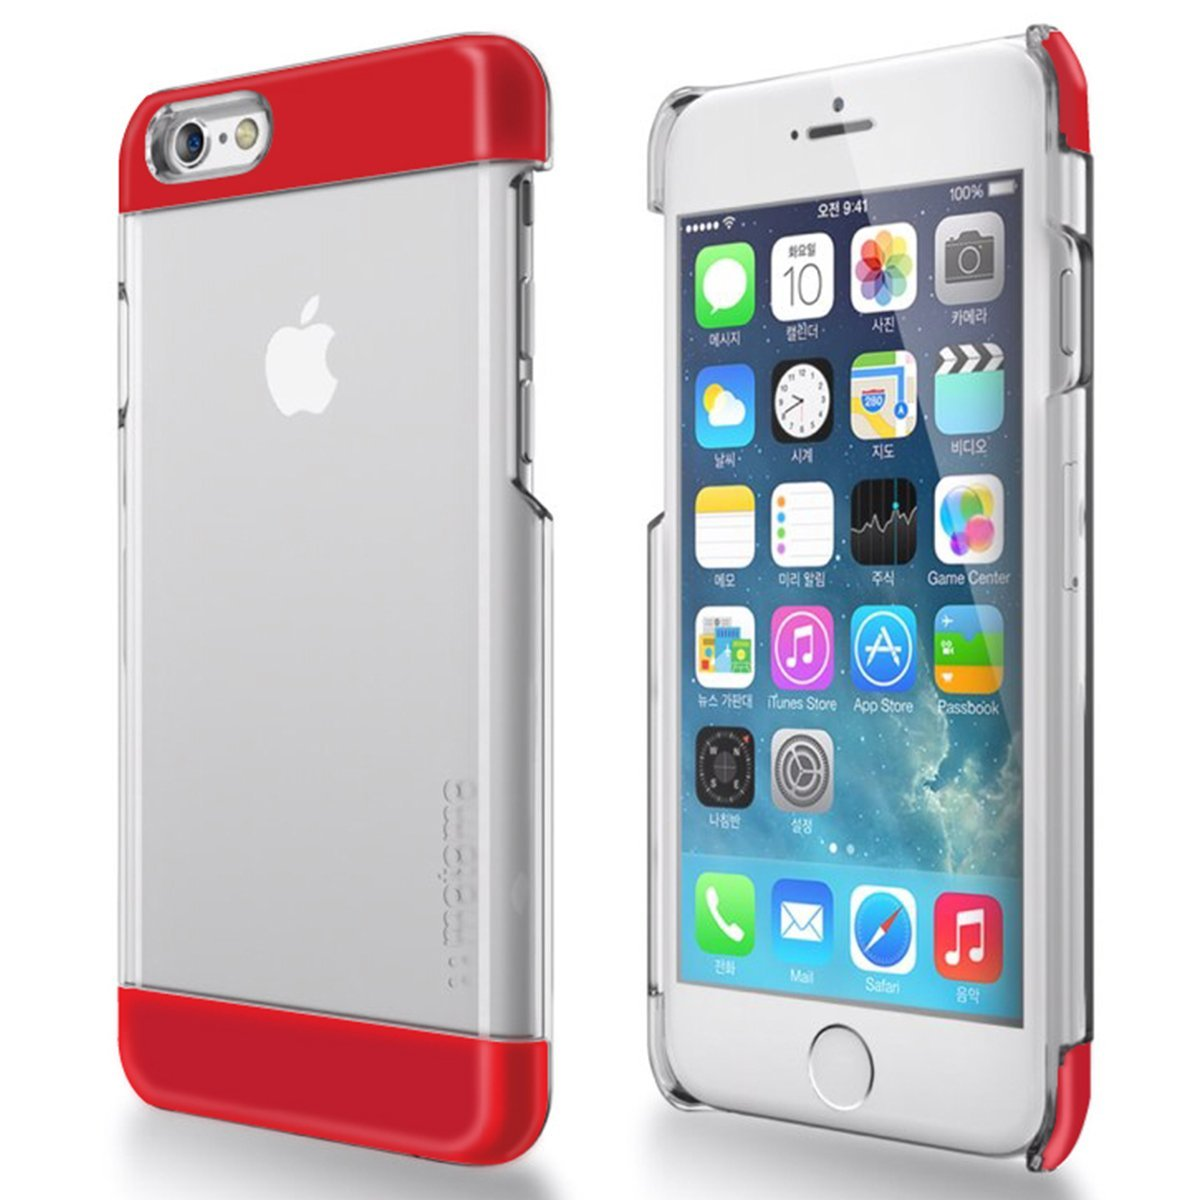 Made for Apple iPhone 6 PLUS/6S PLUS (5.5 inch) Case, INO Wing Series [Red] Slim Clear Form-Fitting Hard Plastic Protective Case Cover by Redshield